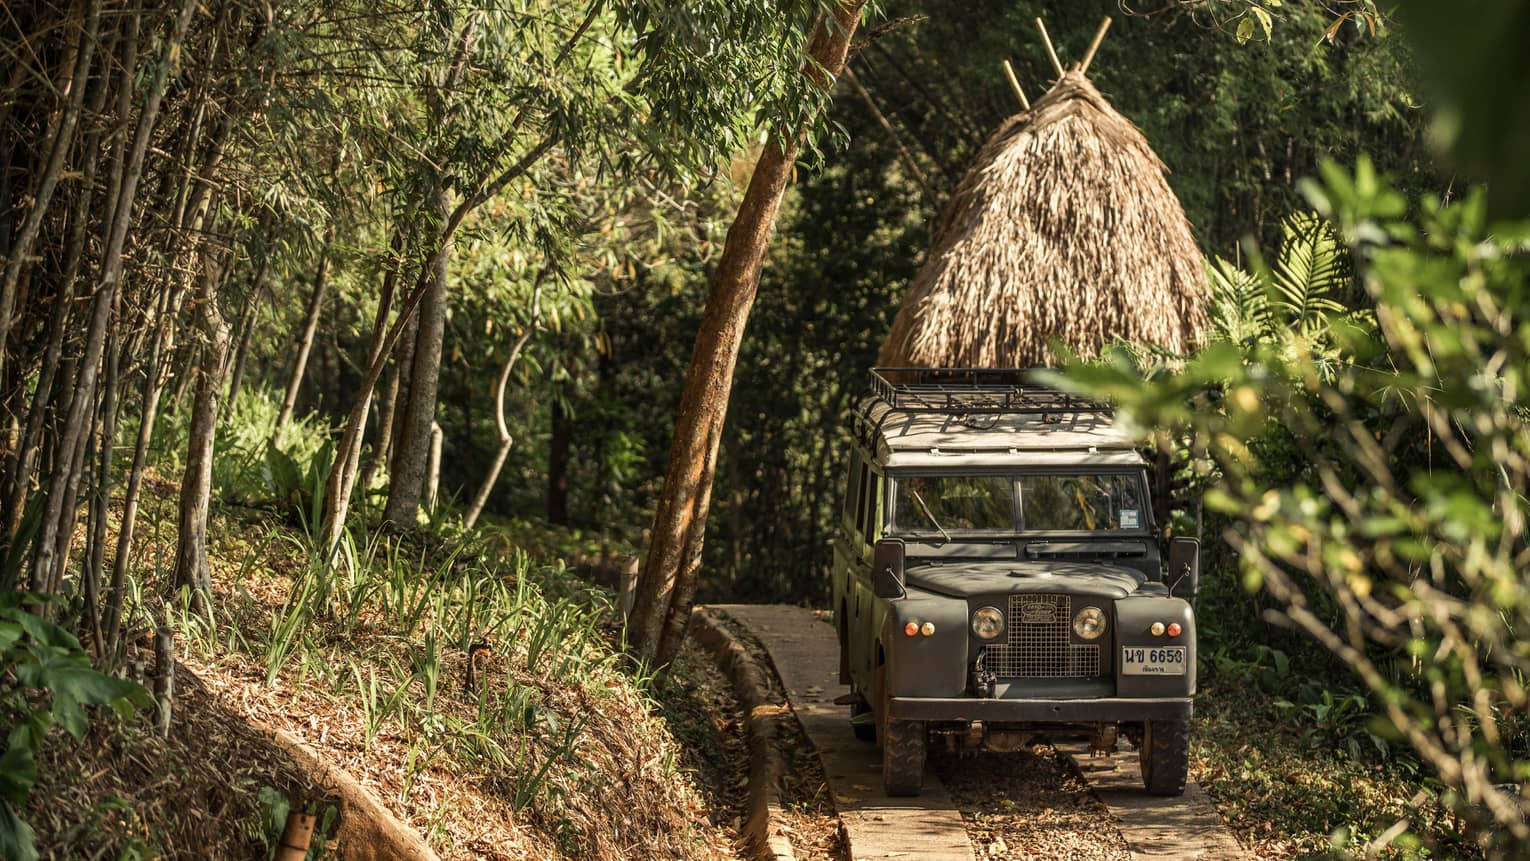 Jeep driving down path in forest past thatched-roof hut